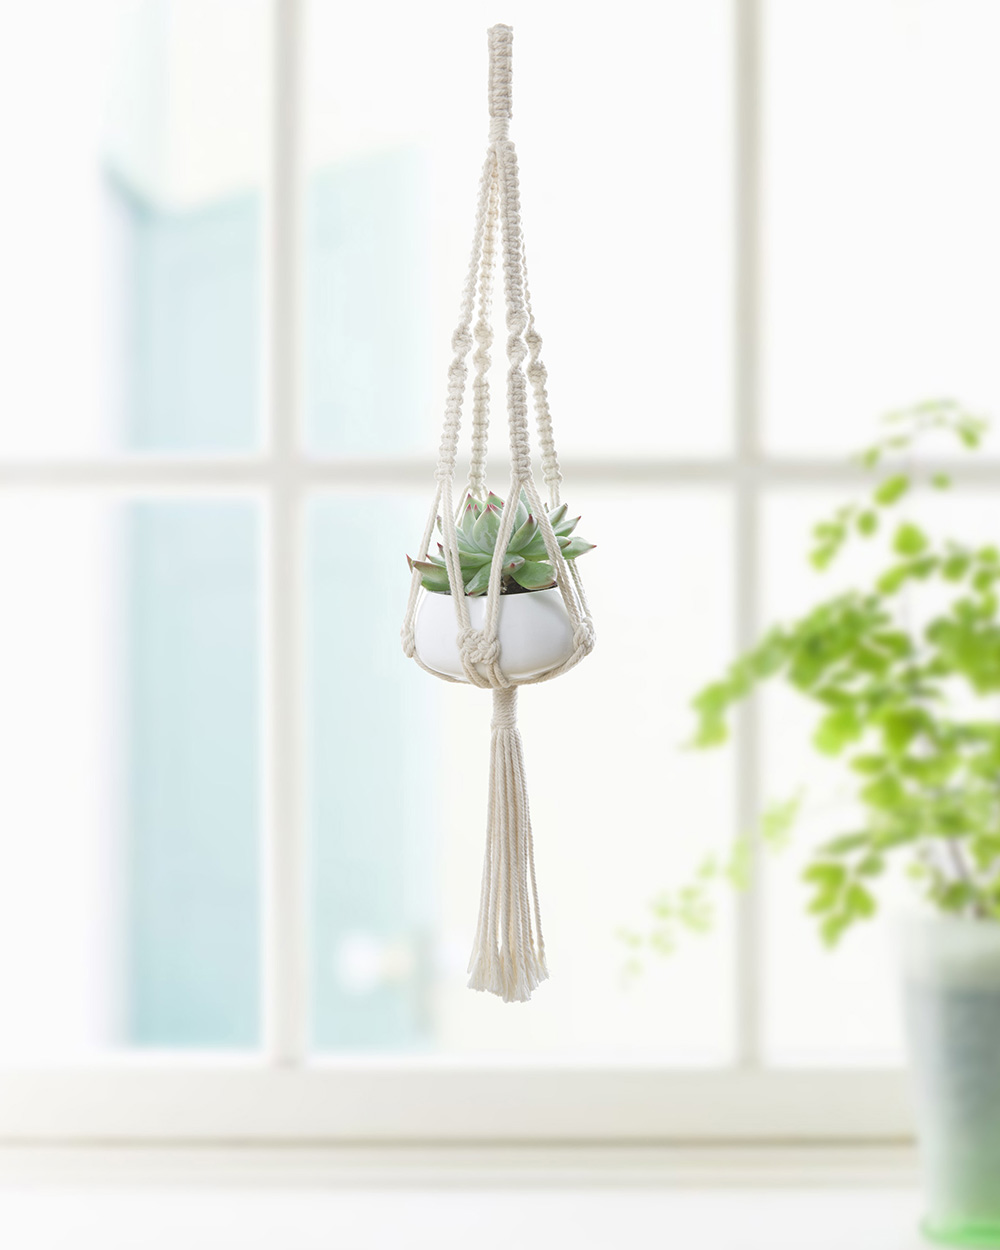 Mini Hanging Macrame Plant Hanger Planter Holder With